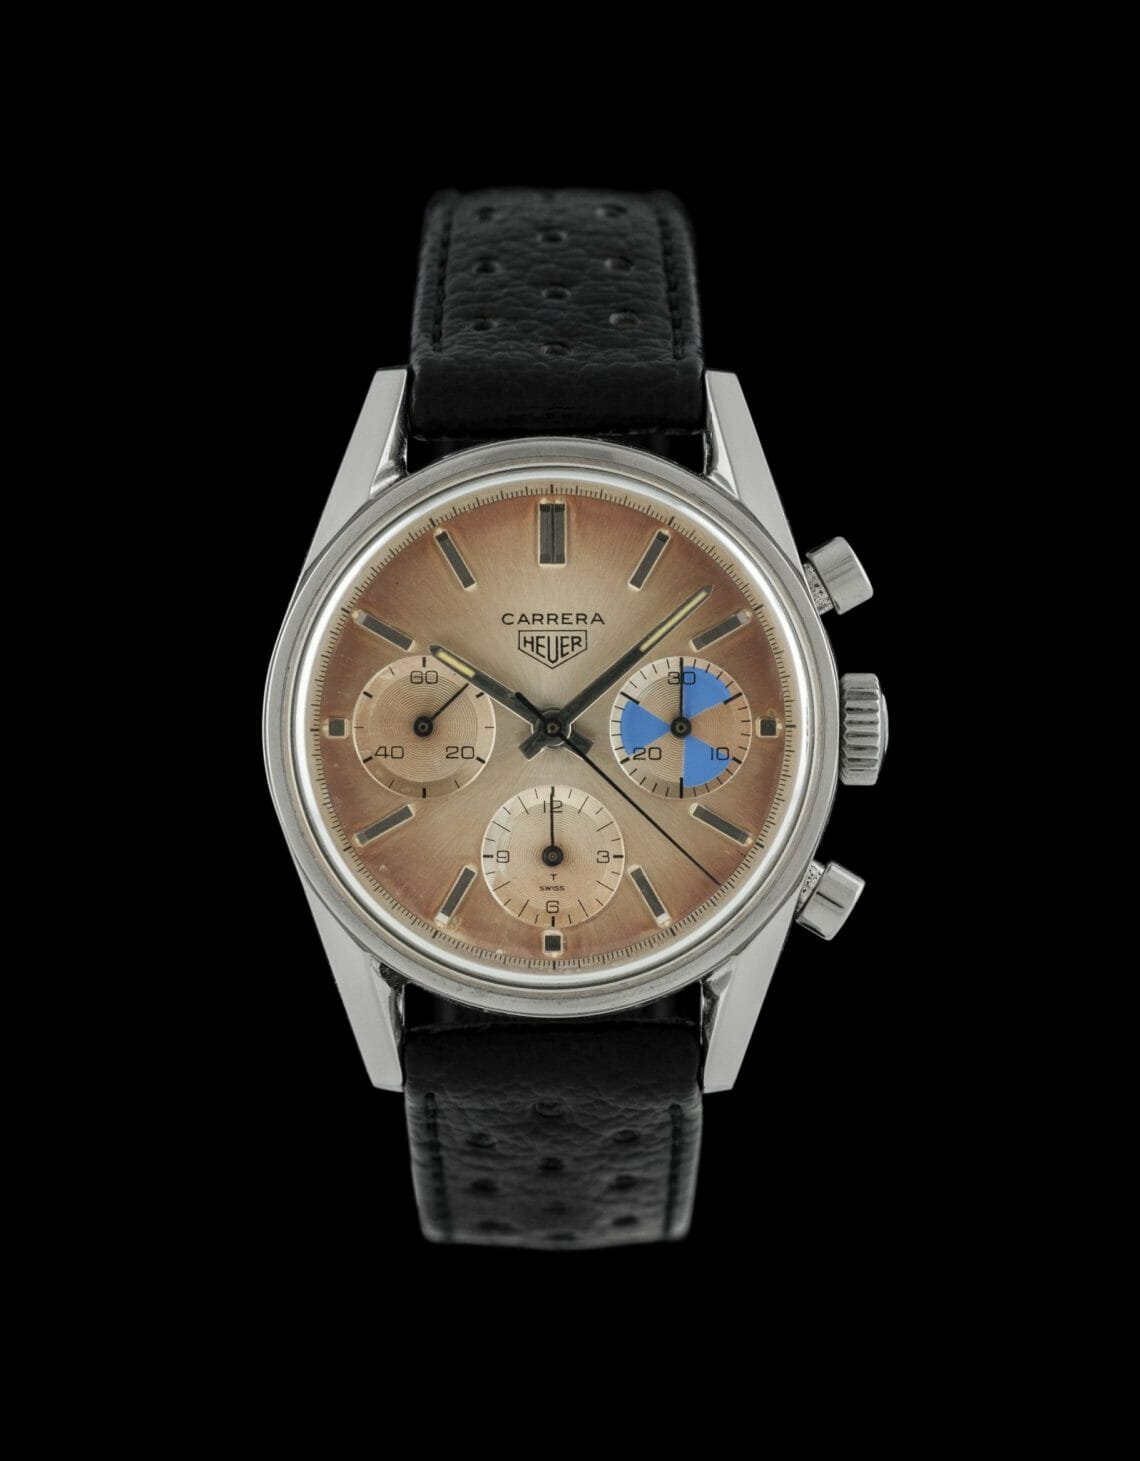 2447 Yachting no1 Phillips, Leading Watch Auction House Announces The Crosthwaite & Gavin Collection: Exceptional Heuer Chronographs From The Jack Heuer Era - EAT LOVE SAVOR International Luxury Lifestyle Magazine